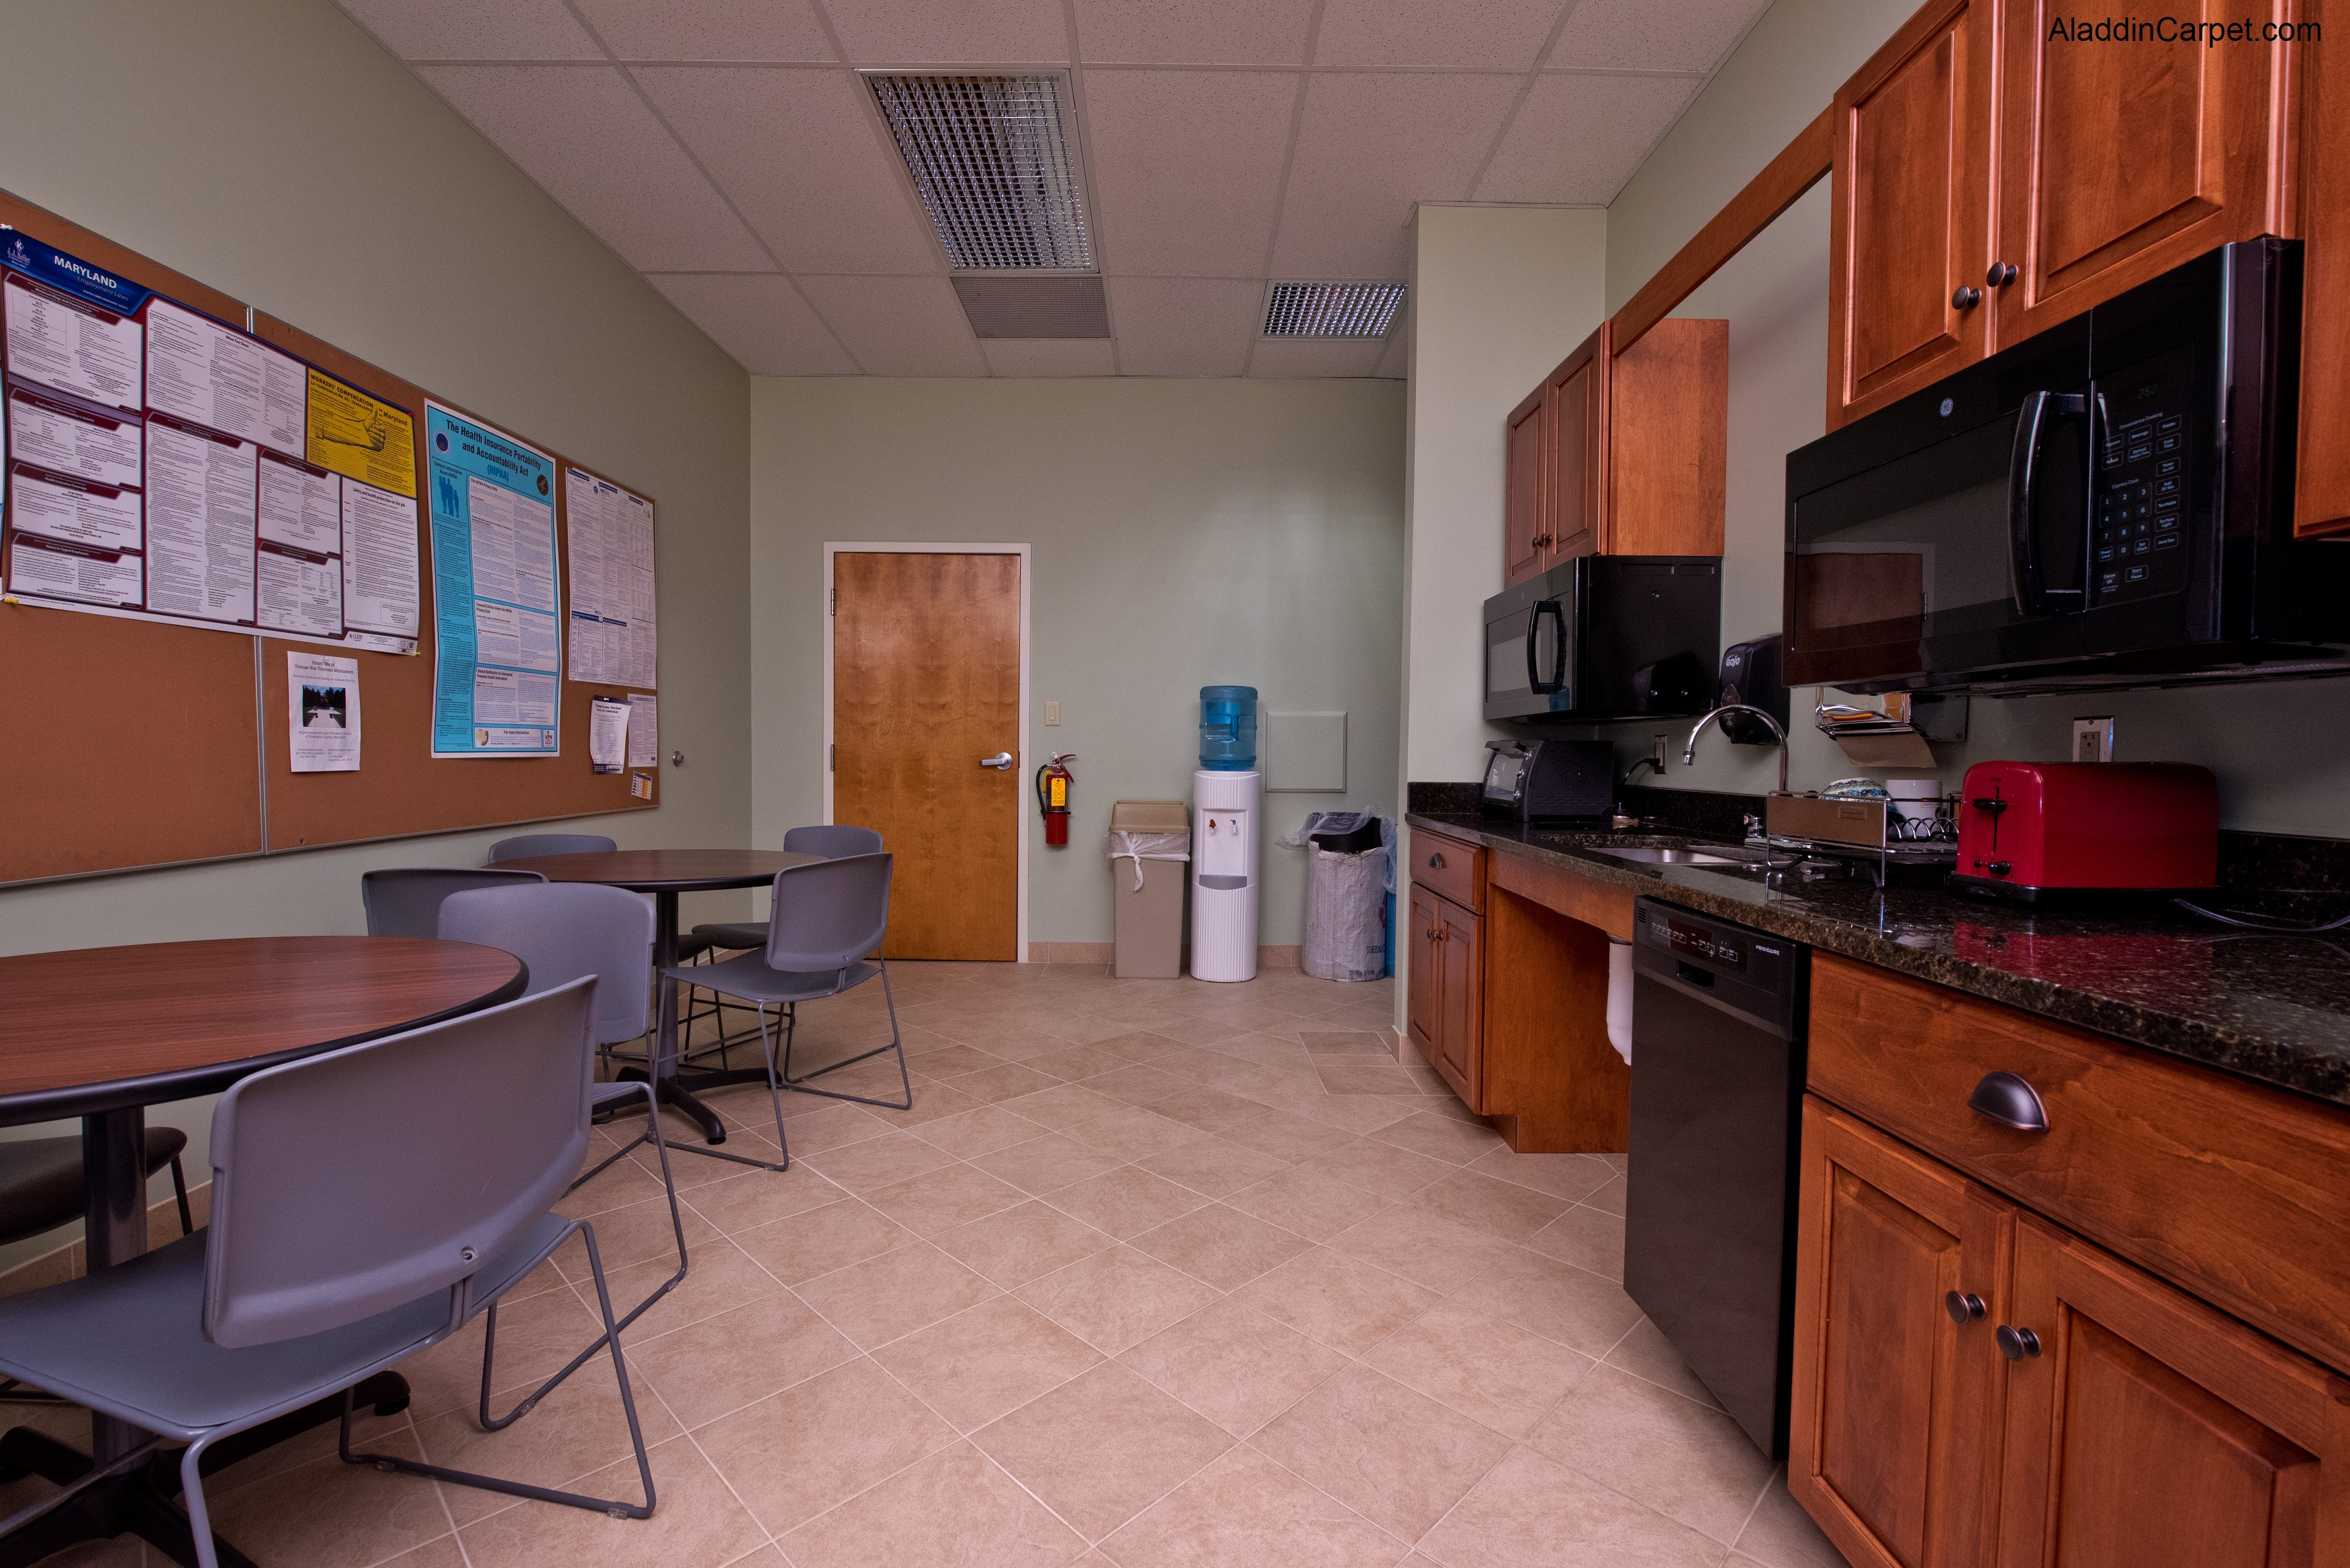 commercial flooring - west baltimore street, hagerstown, md 21740